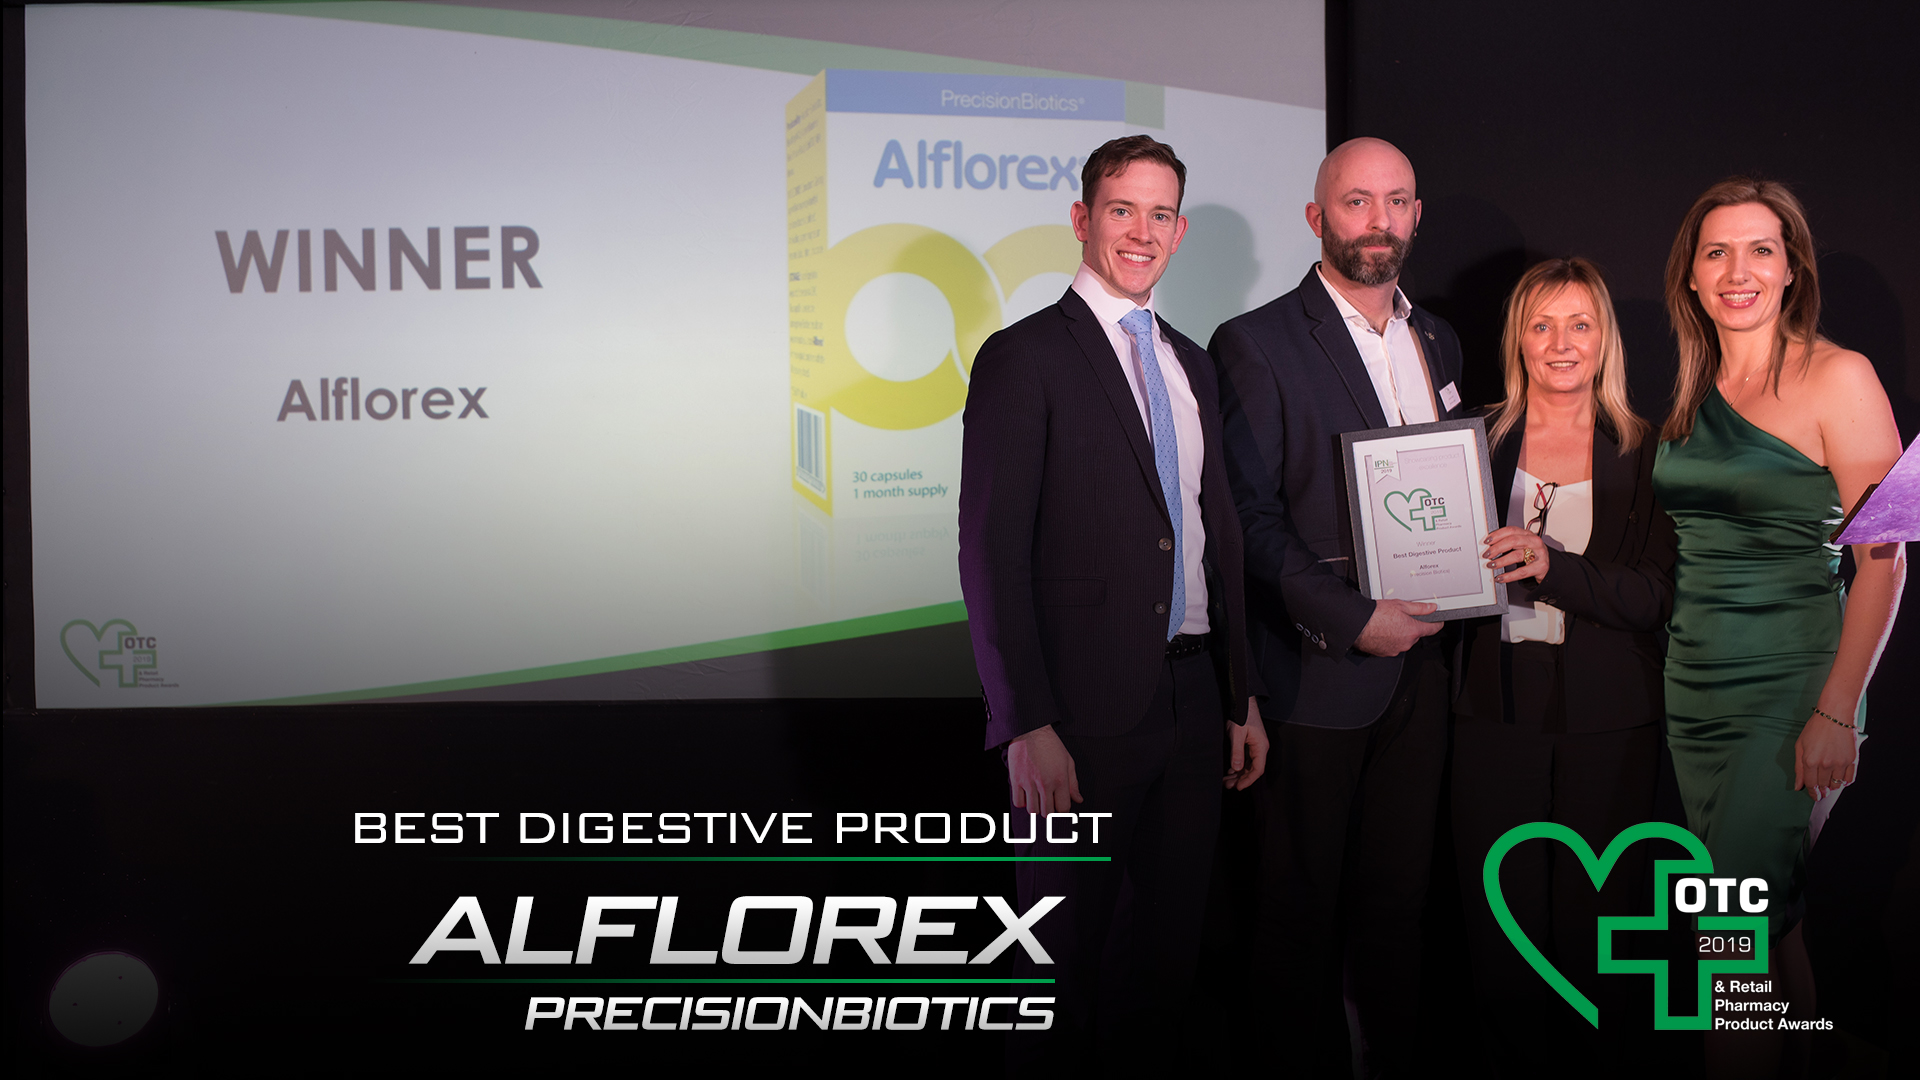 Alflorex, Voted Best Digestive Product 2019